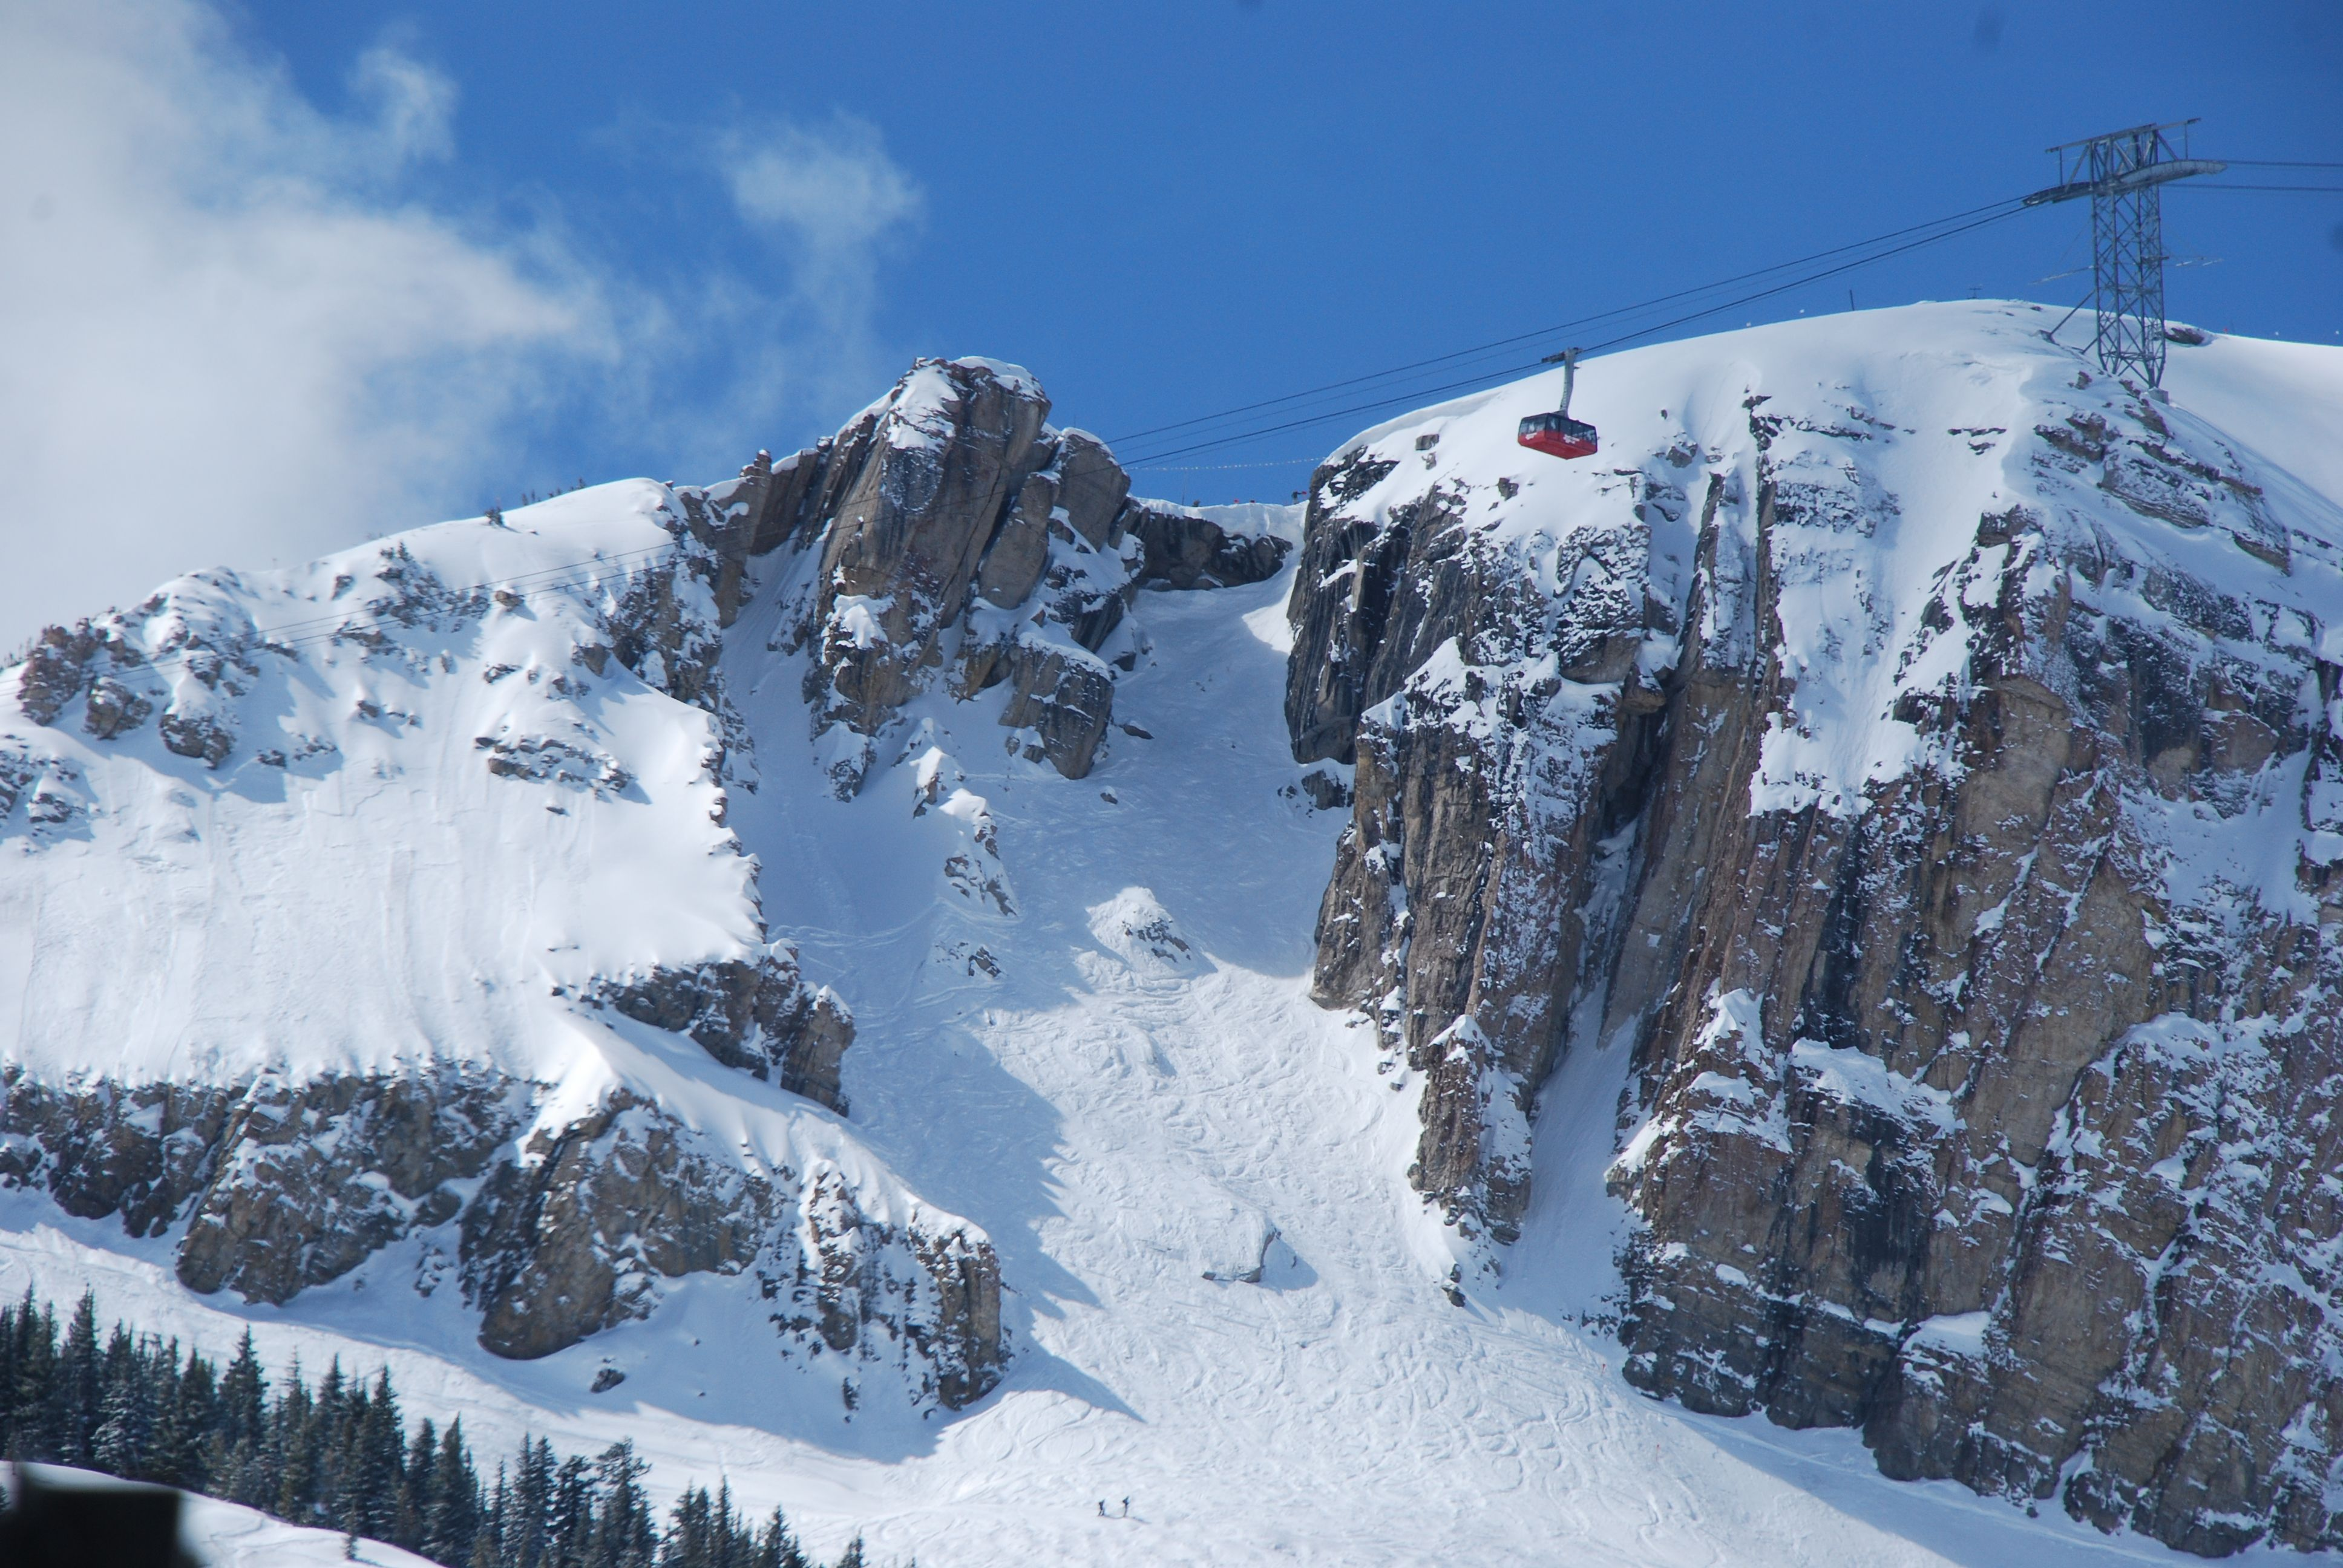 corbets_couloir_jackson_hole | free lines | pinterest | skiing